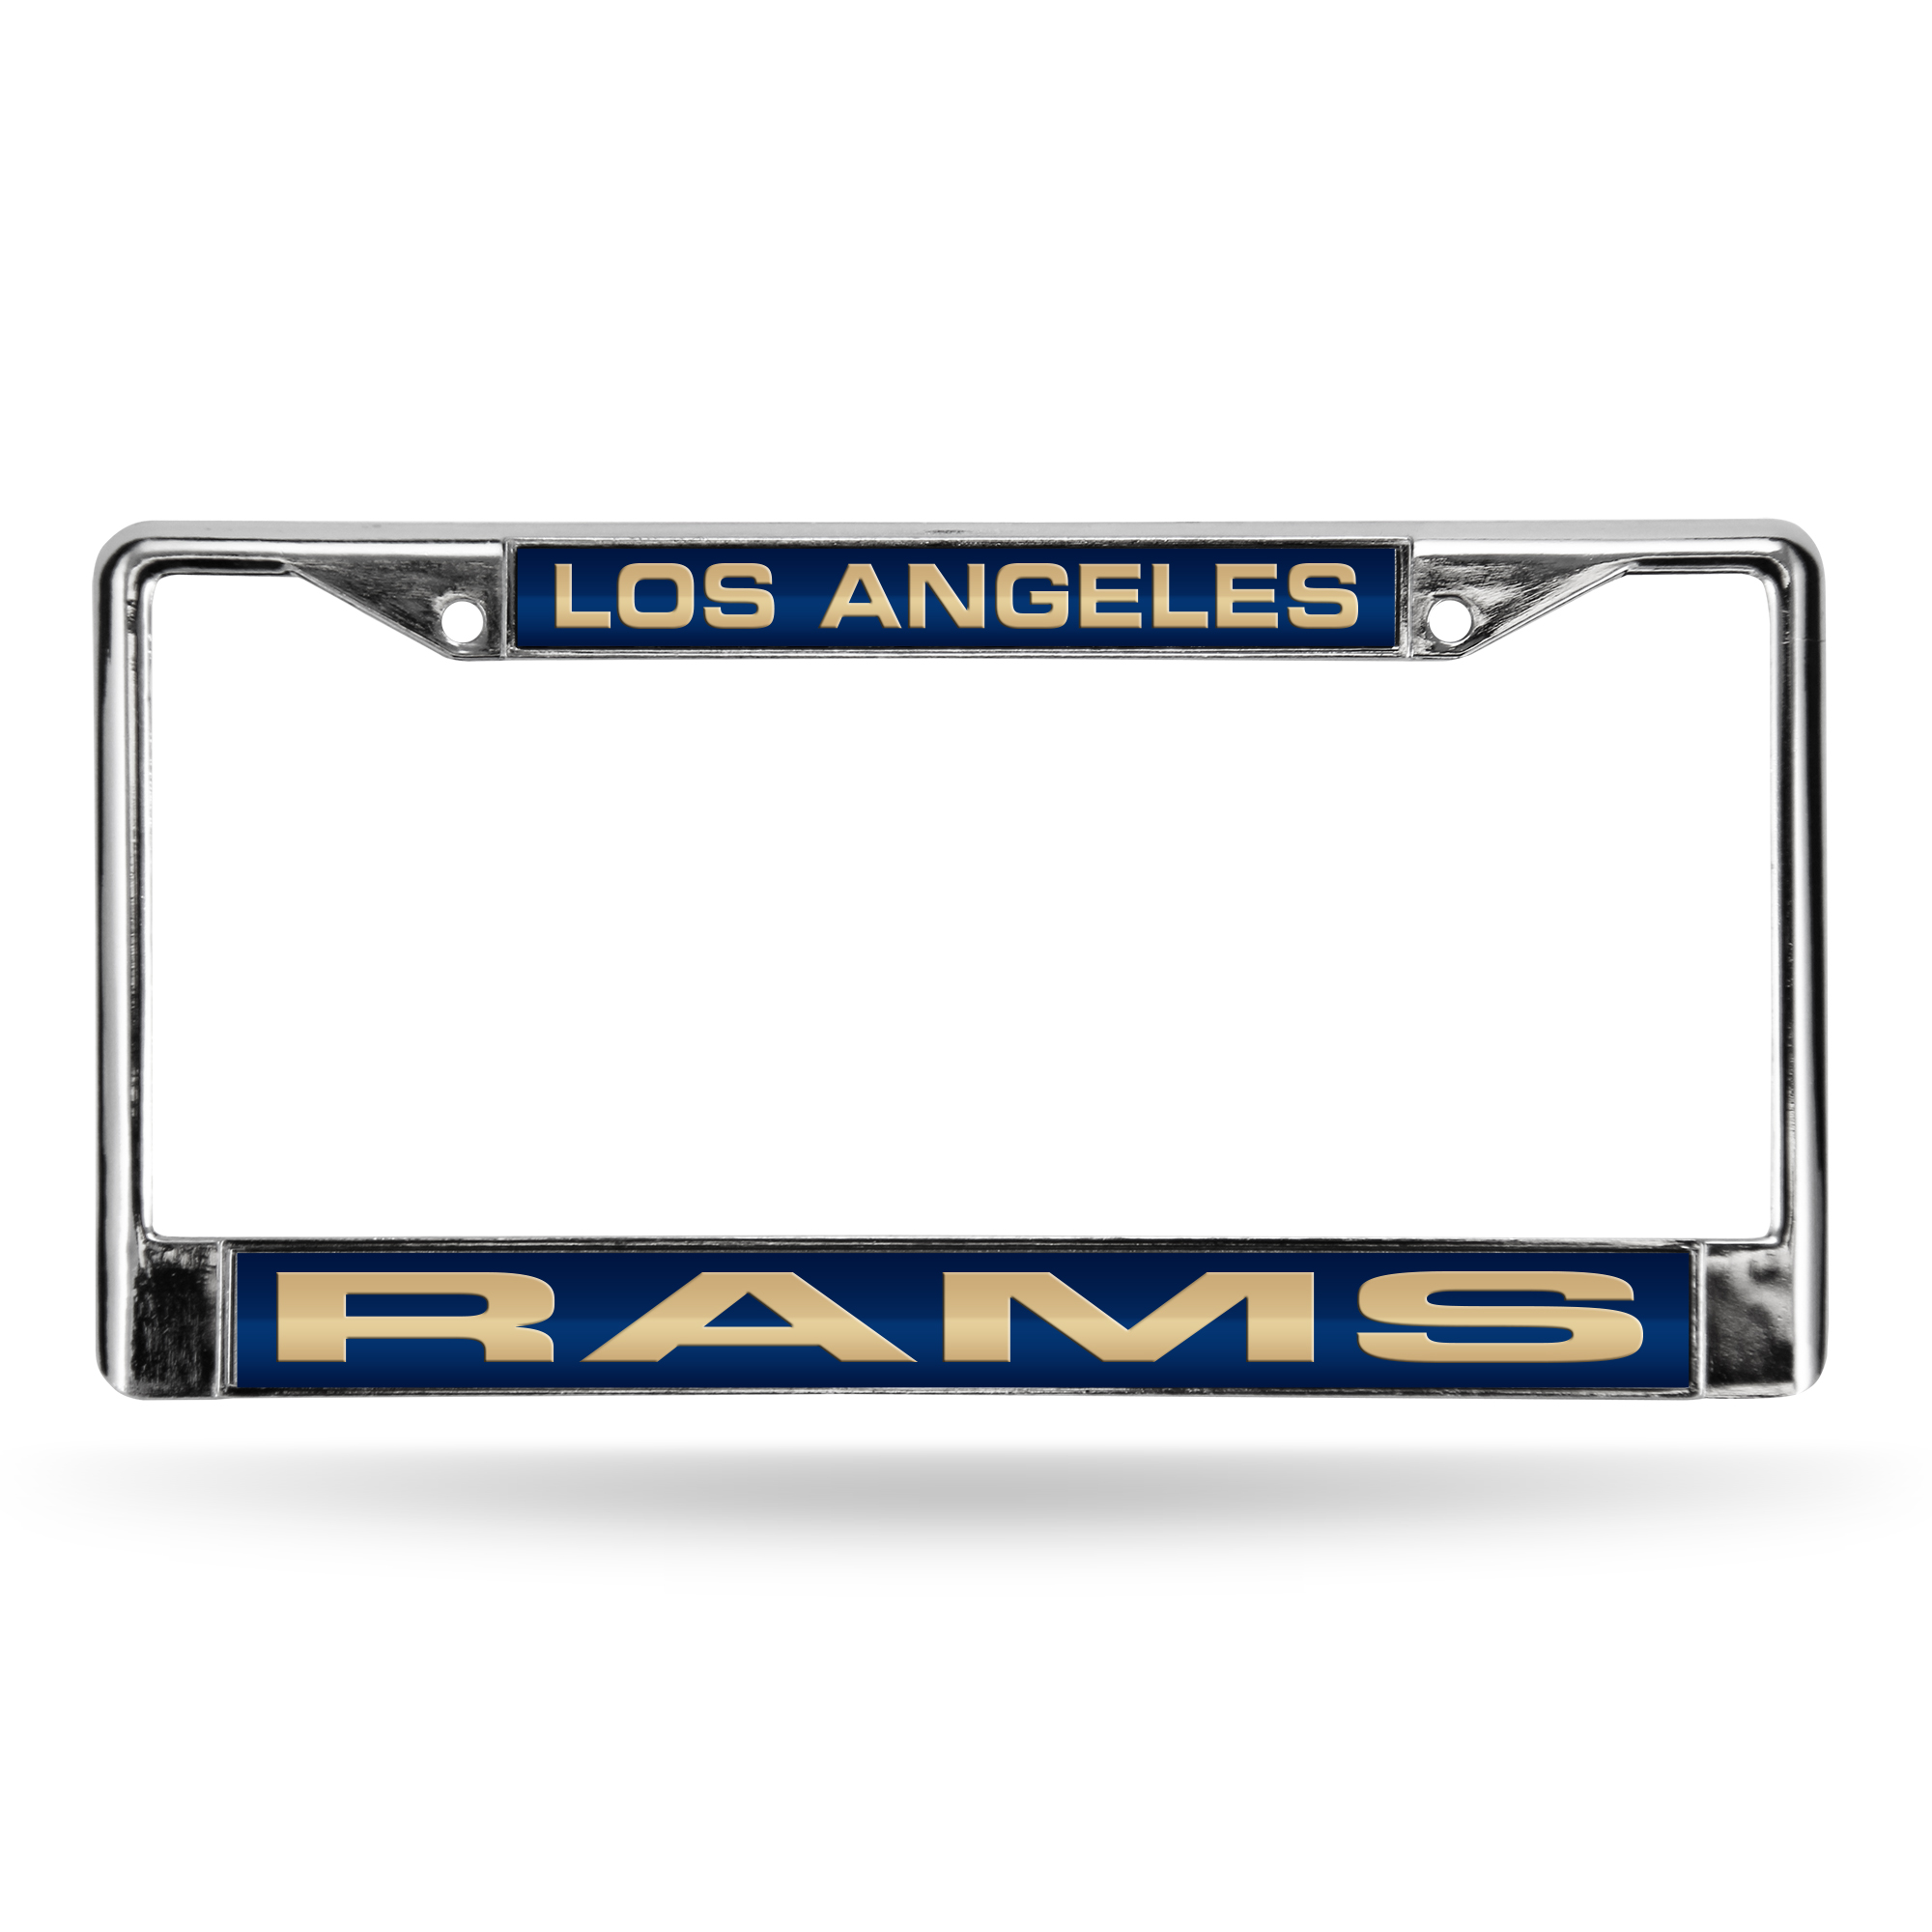 Colorful Nfl License Plate Frames Pictures - Picture Frame Ideas ...